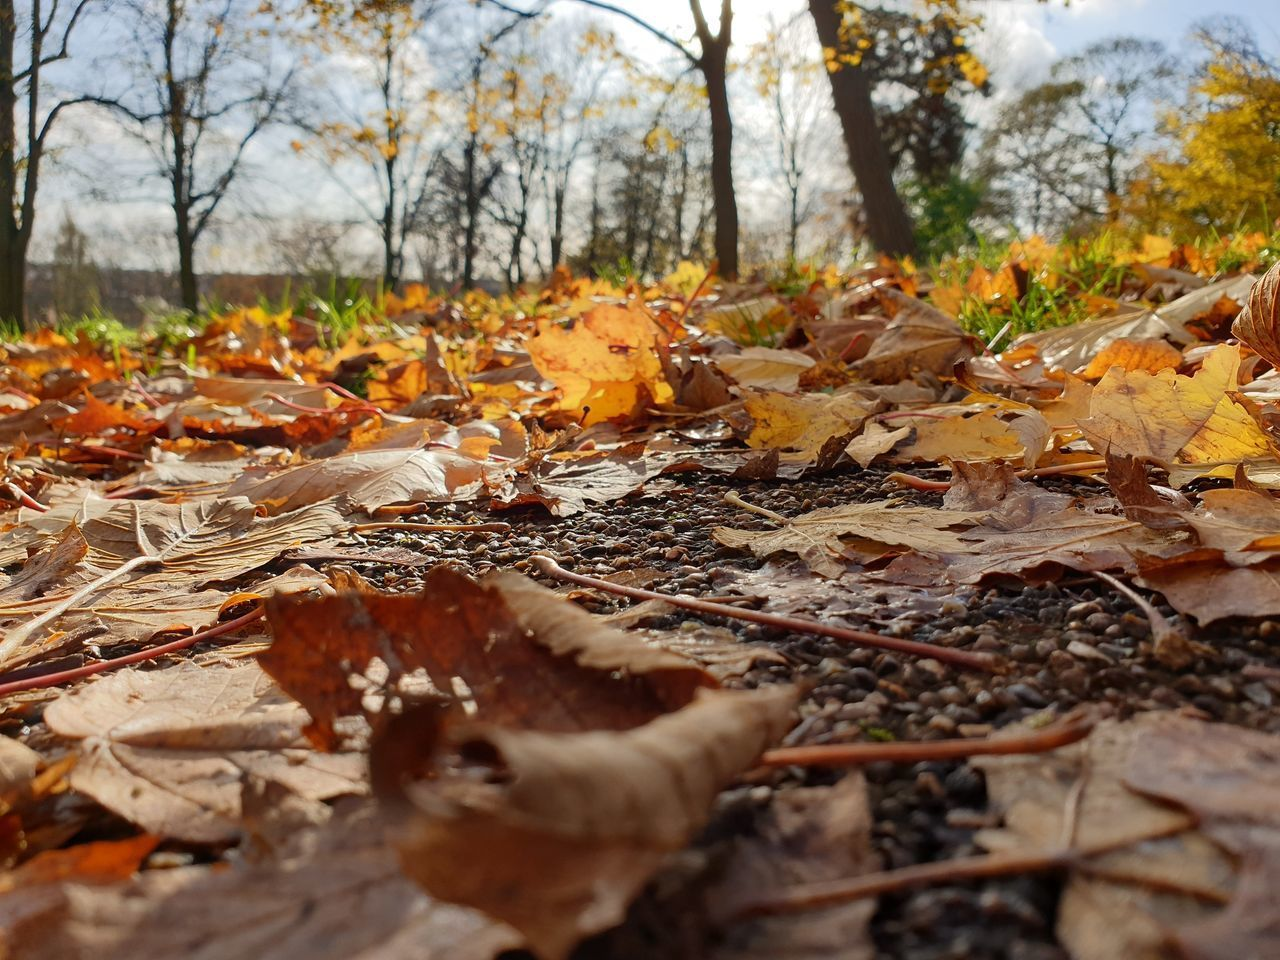 CLOSE-UP OF FALLEN LEAVES ON FIELD